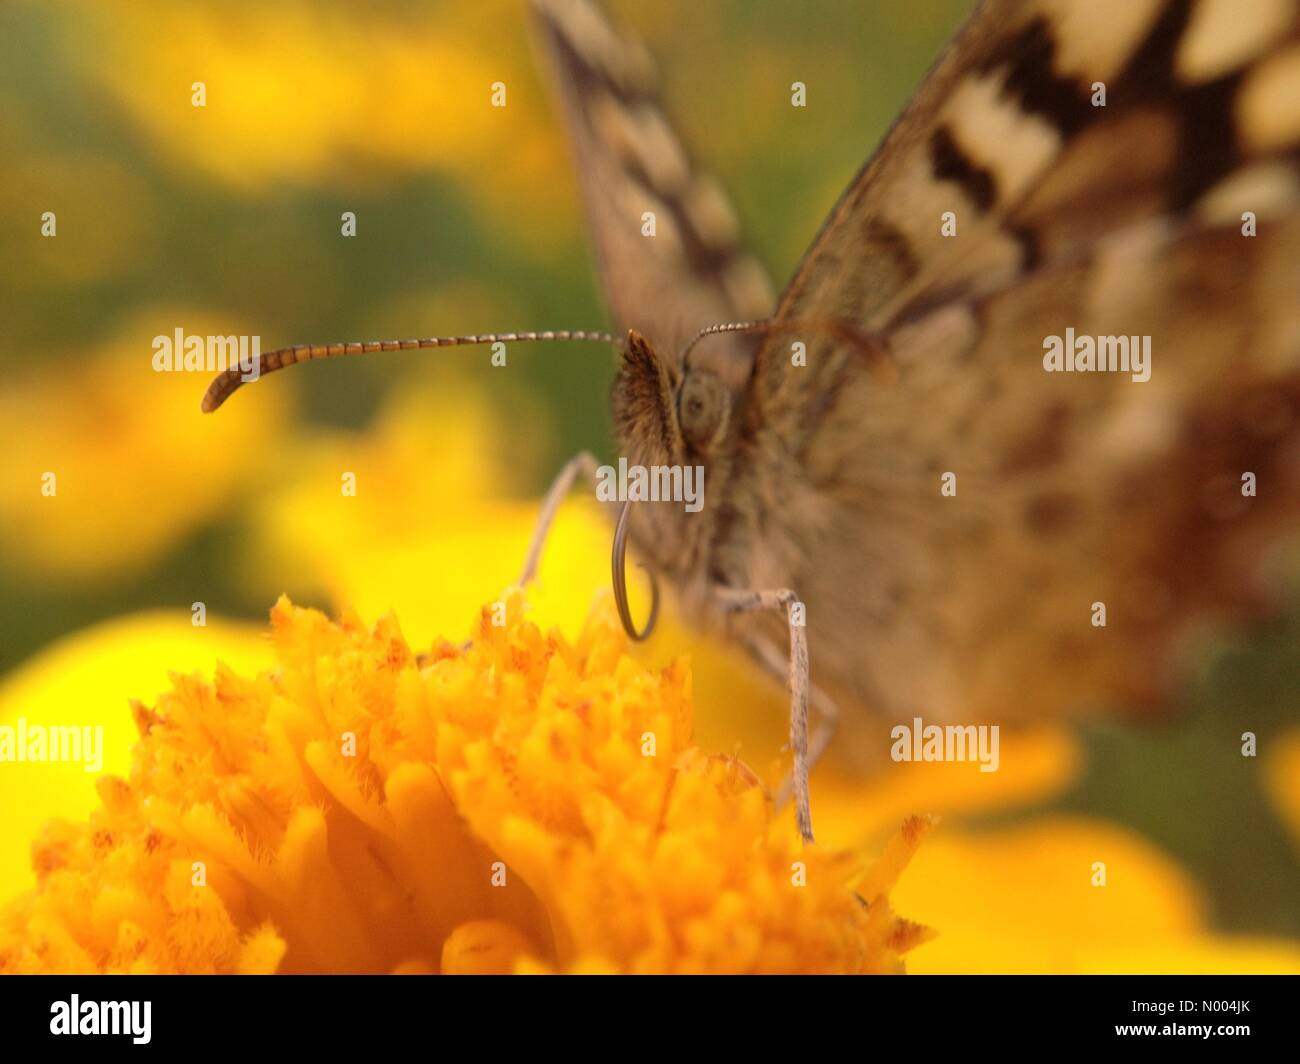 UK weather - A sunny day at Golden Acre park near Leeds, West Yorkshire. This butterfly was pollinating a flower - Stock Image